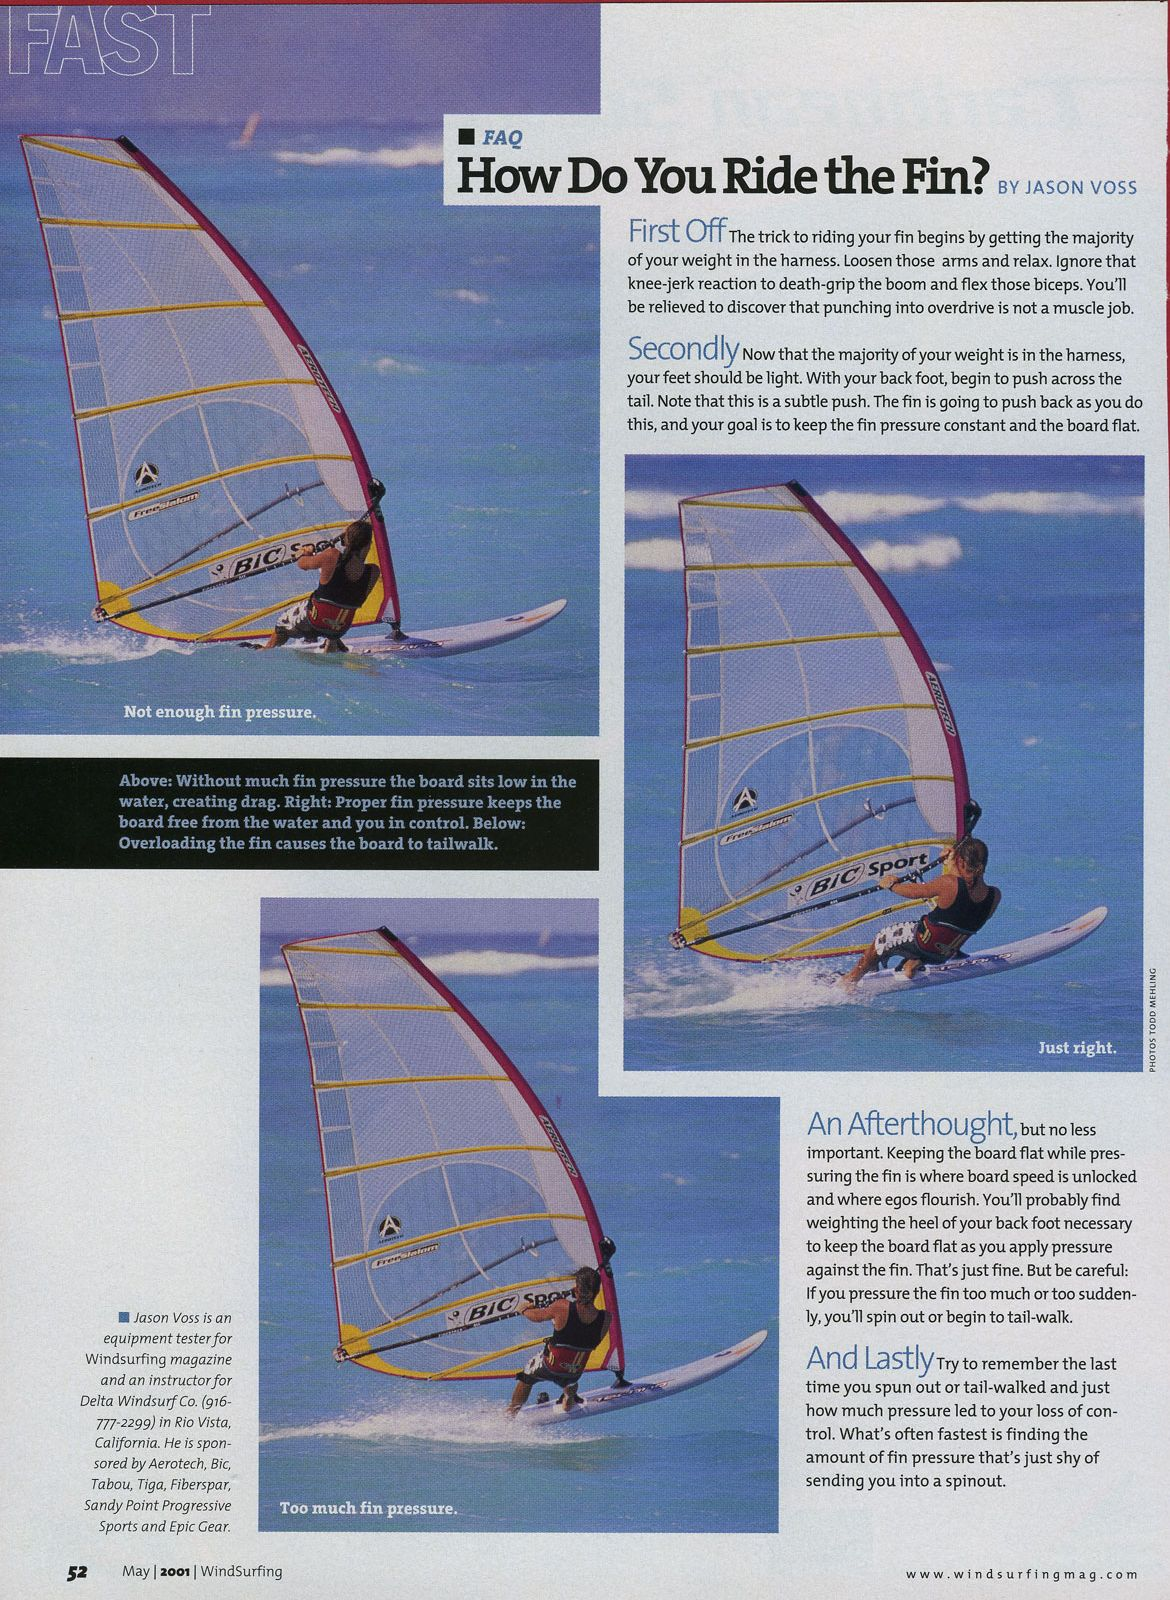 J R V Windsurfing Instruction/Instructional Articles